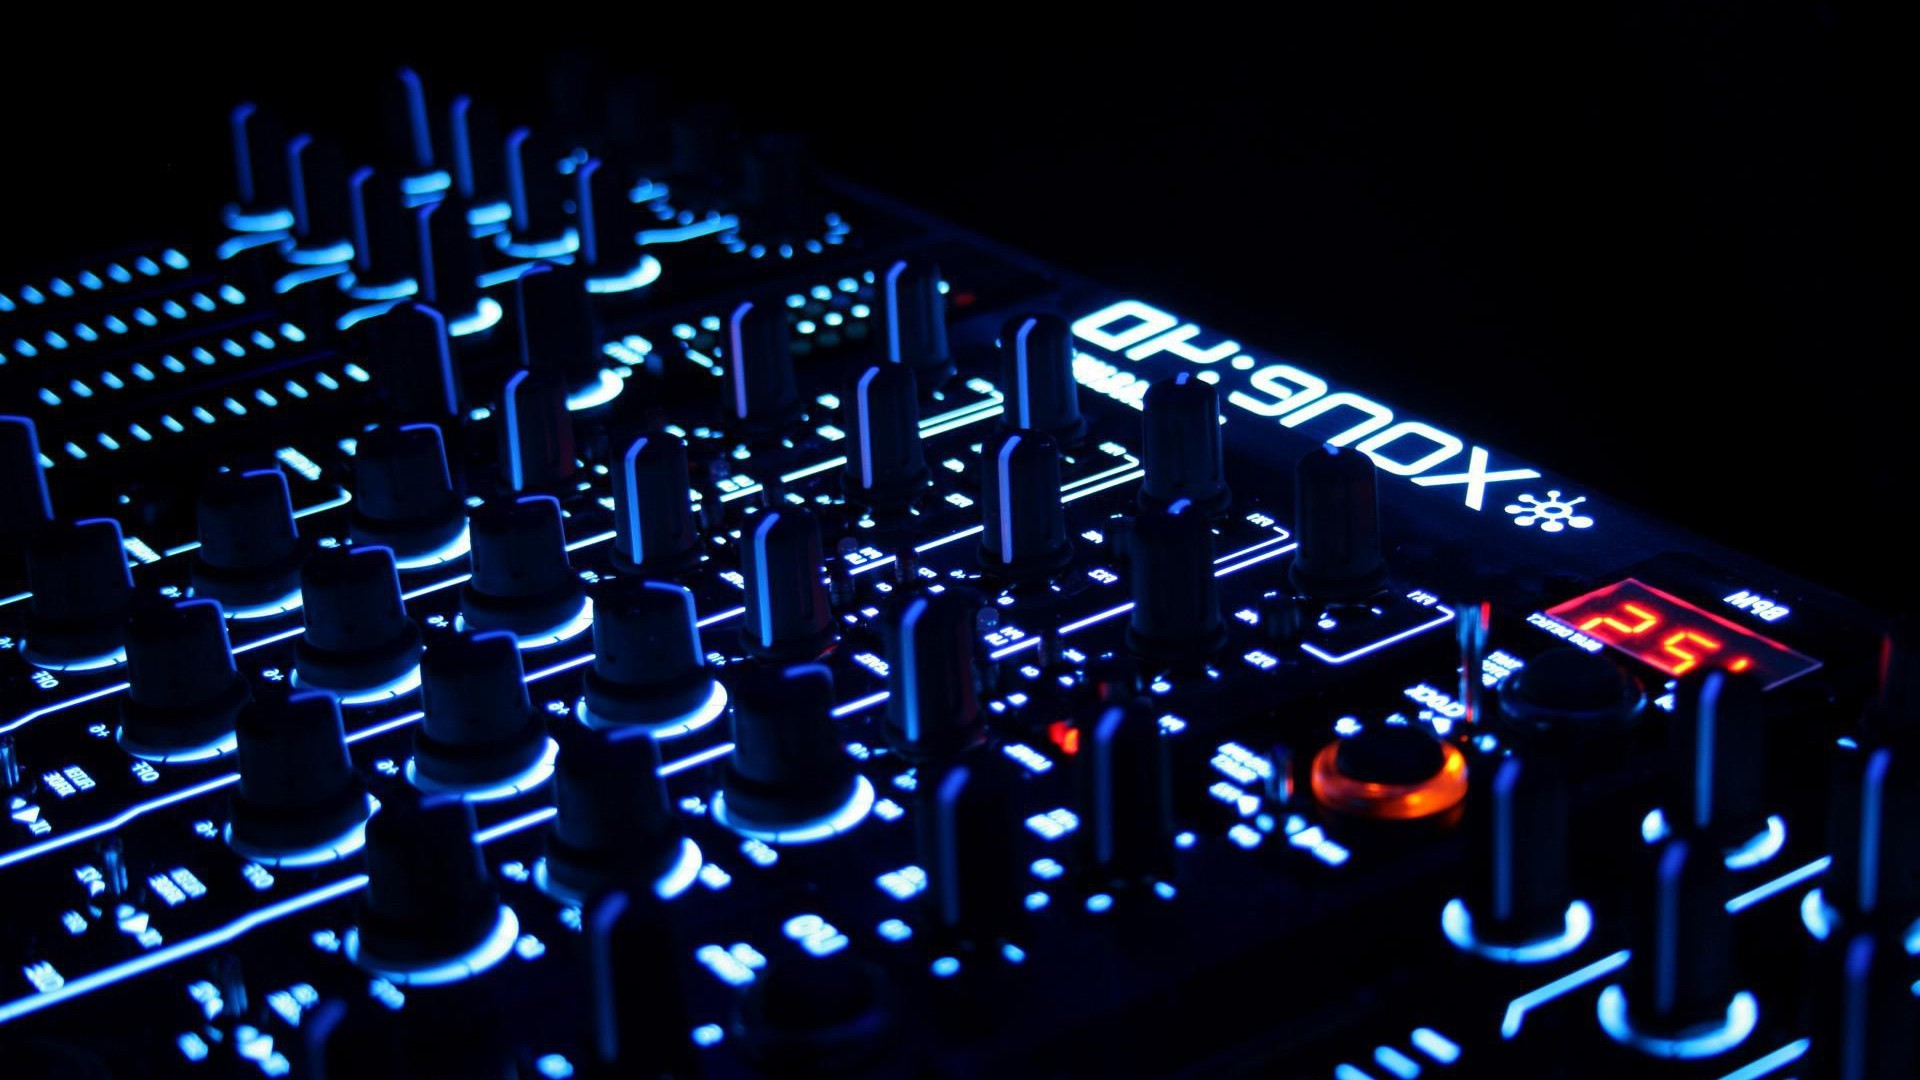 1920x1080 Cool Other Music Dj Dj Console Wallpaper